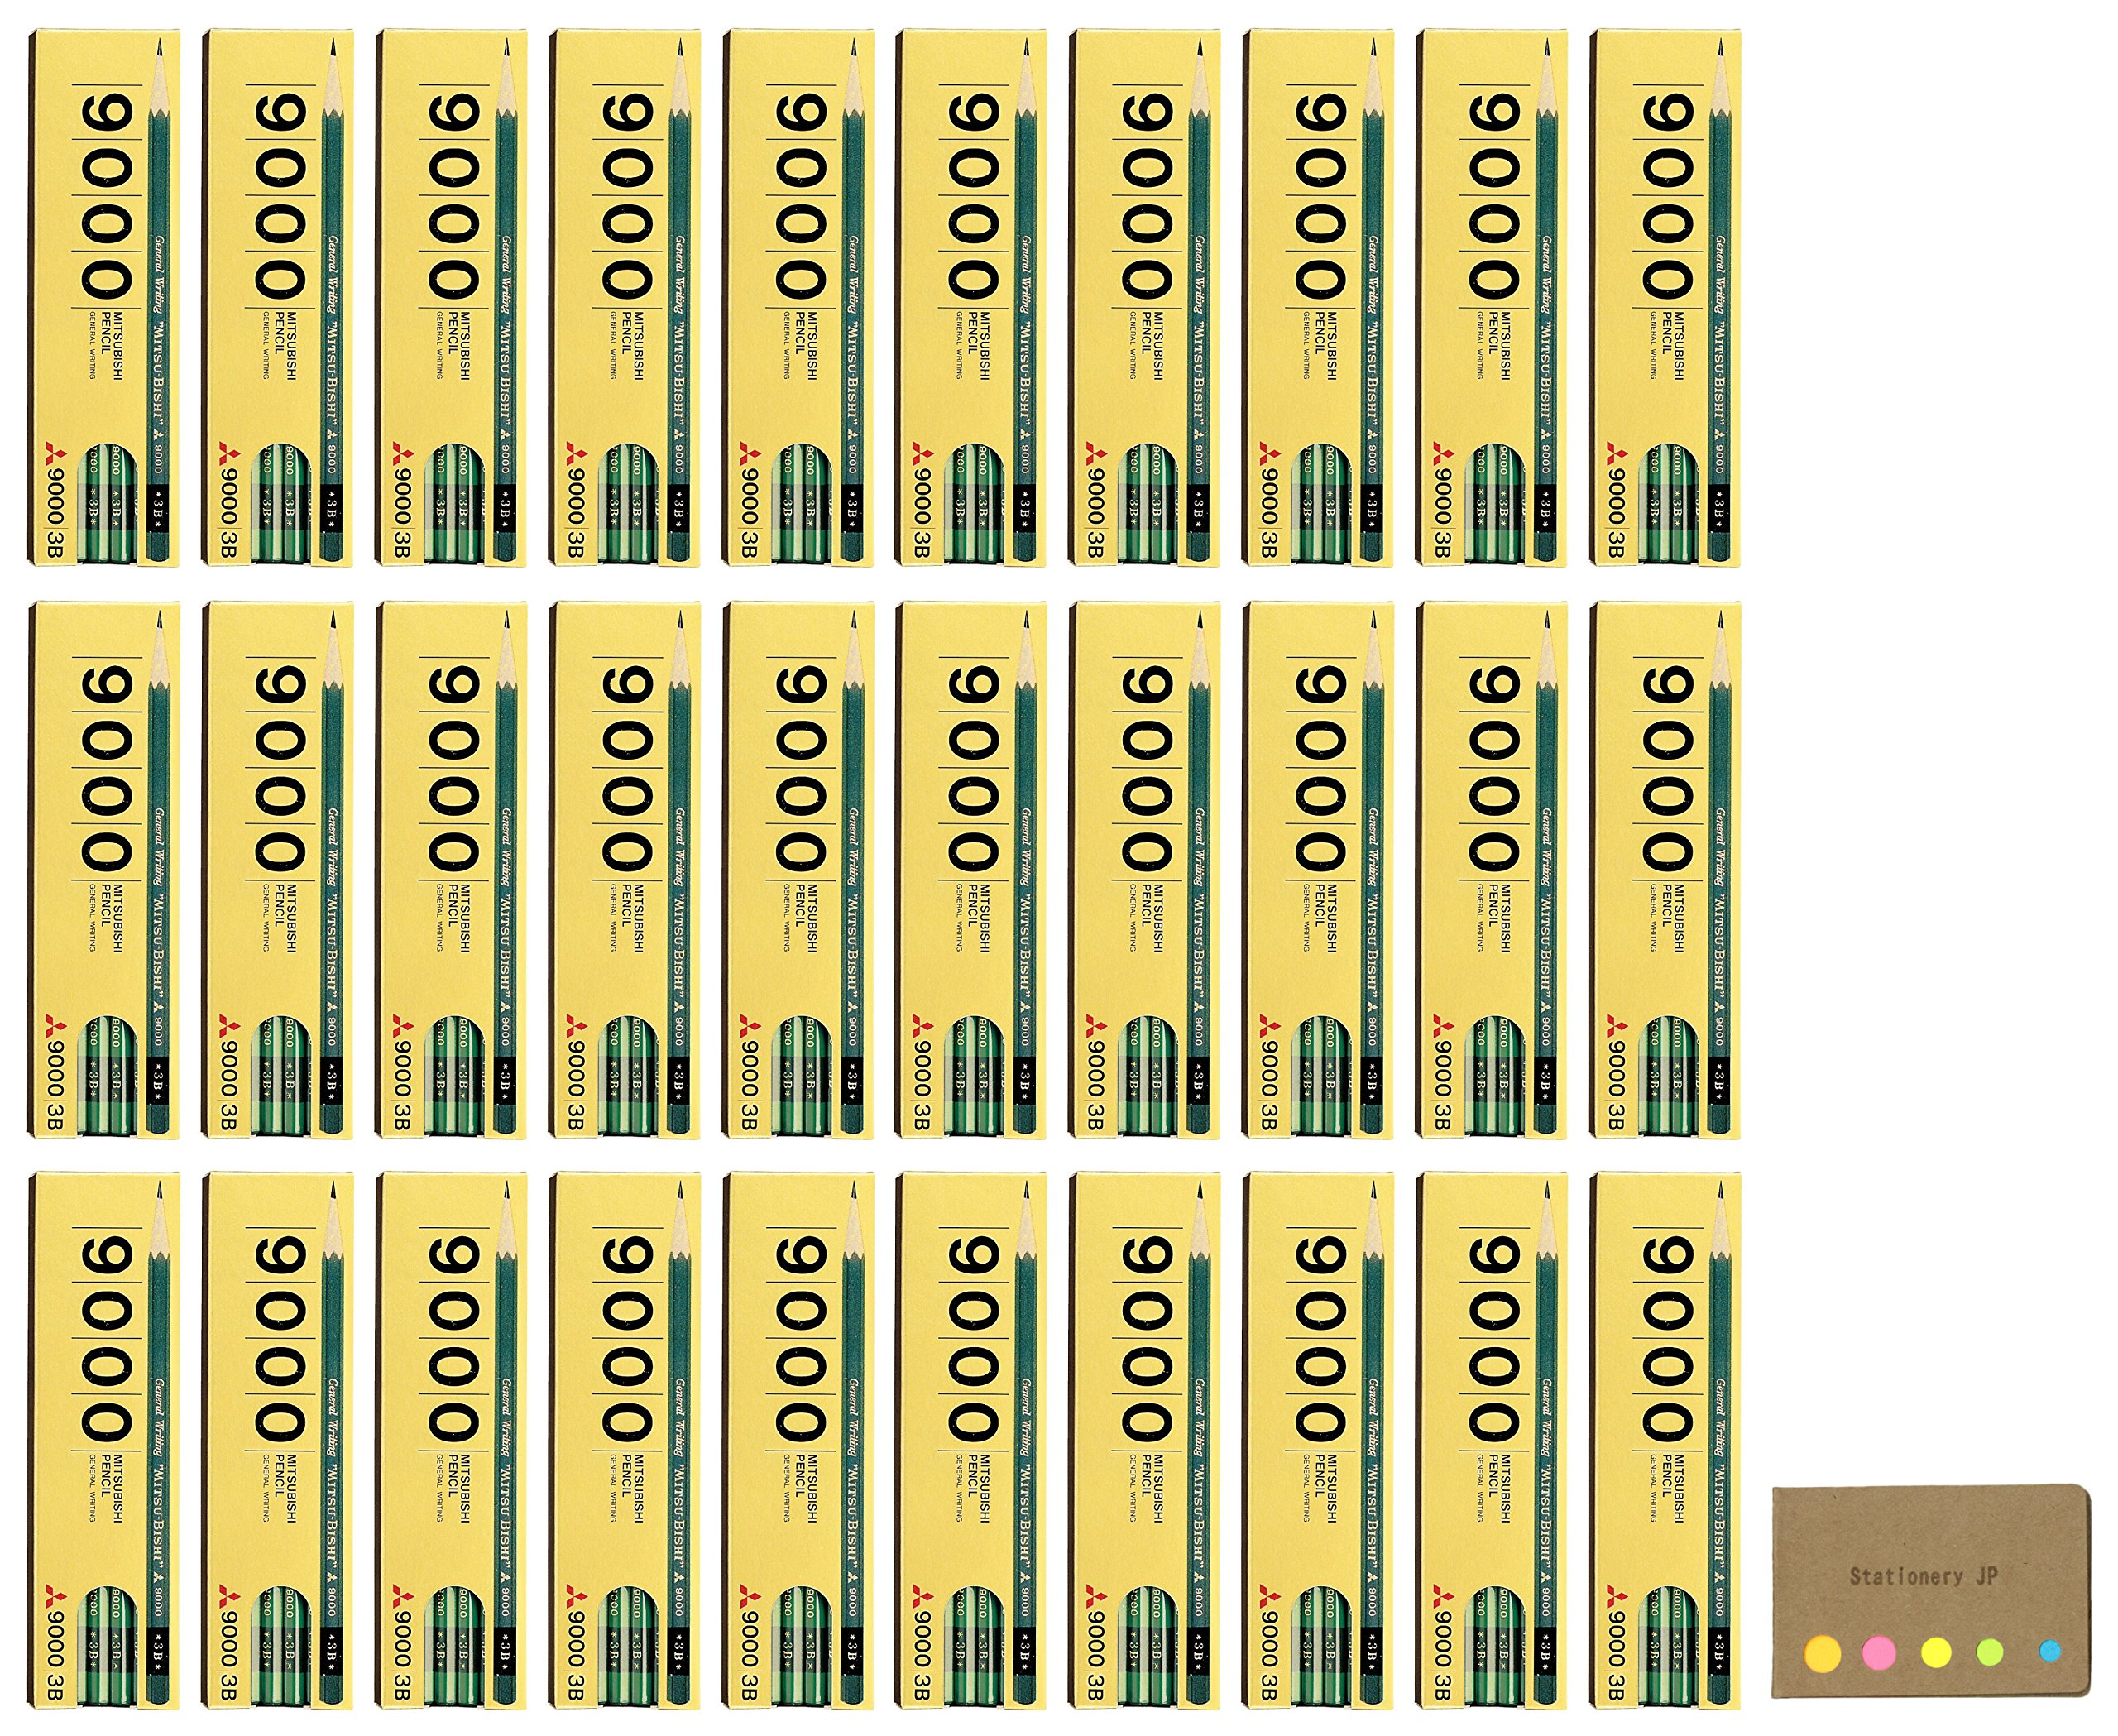 Uni Mitsubishi 9000 Pencil, 3B, 30-pack/total 360 pcs, Sticky Notes Value Set by Stationery JP (Image #1)